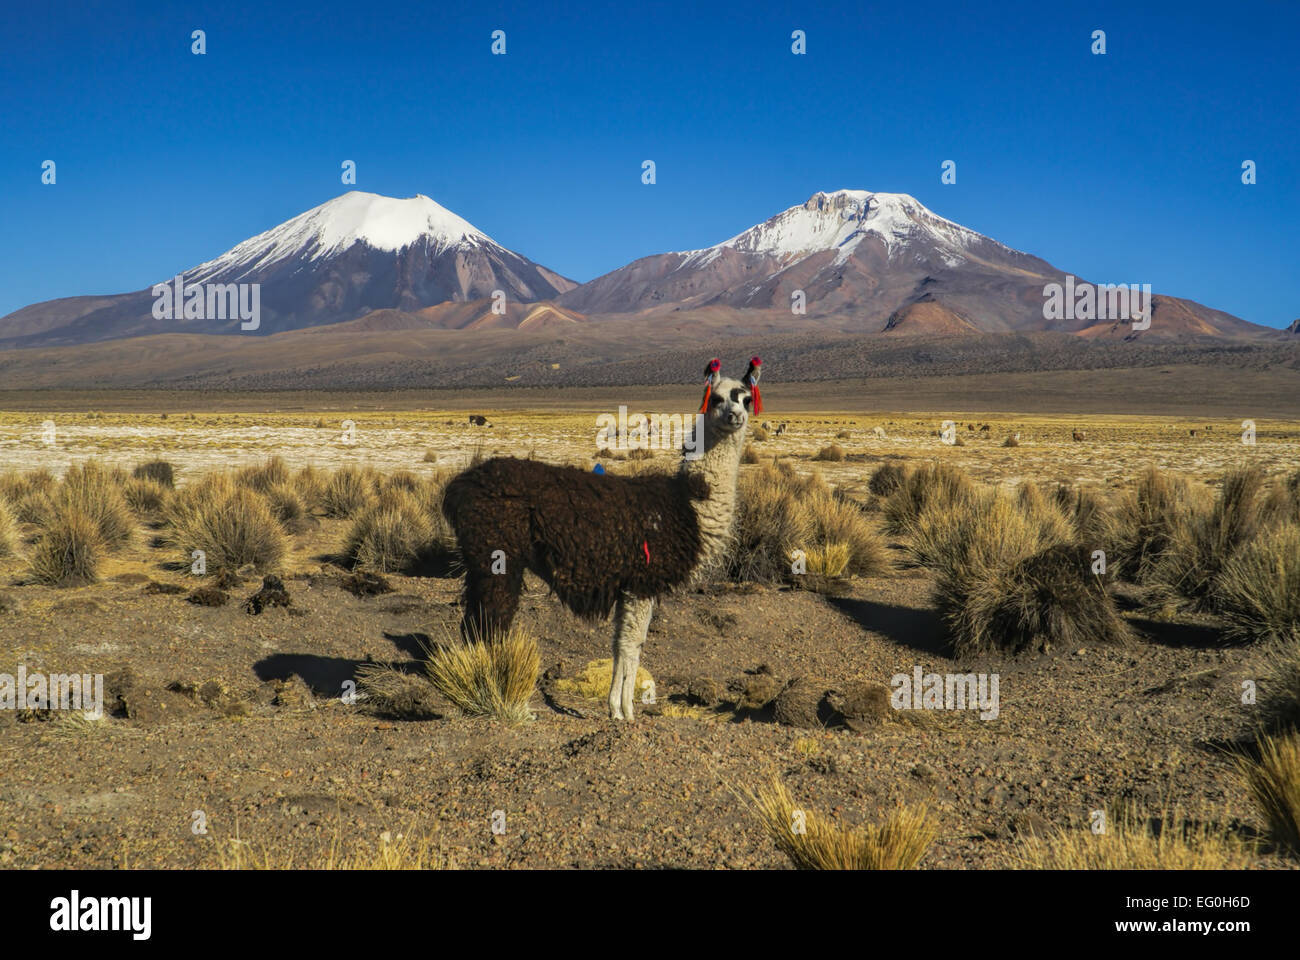 Cute llama in bolivian Sajama national park with scenic volcanoes Paranicota and Pomerape in the background - Stock Image